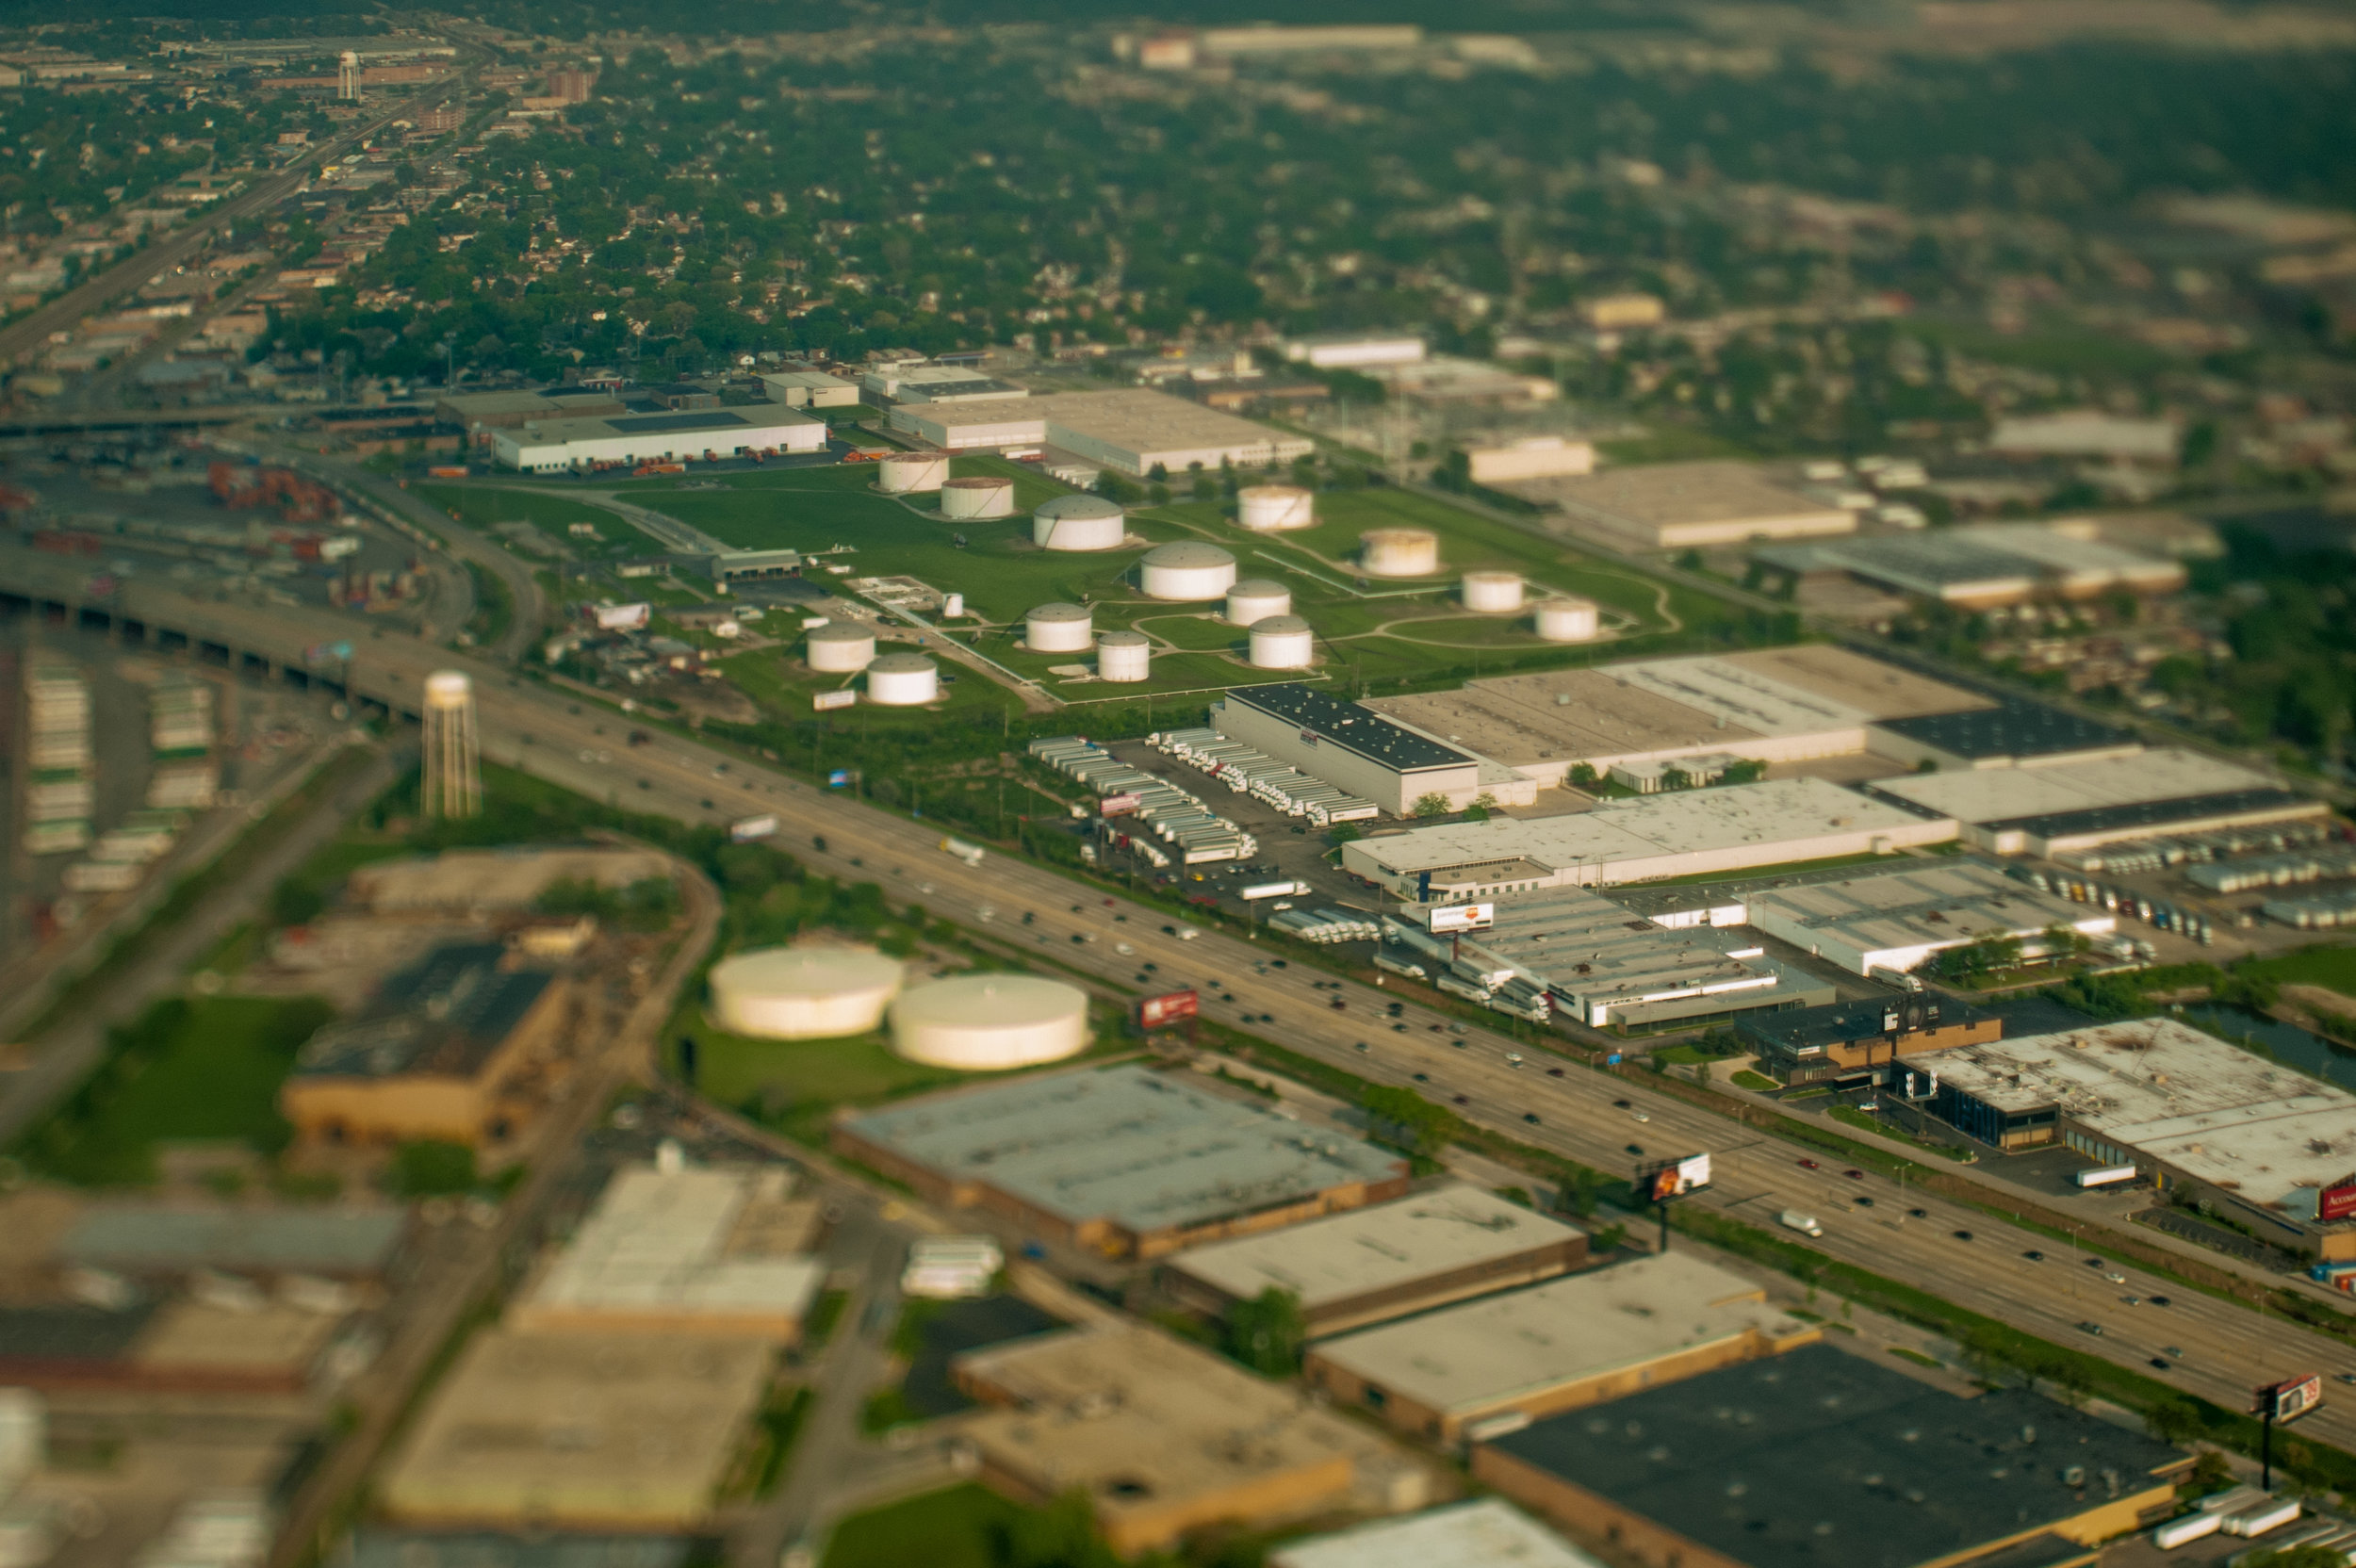 city_gas storage_industry_warehouse_highway_chicago_LMS.jpg